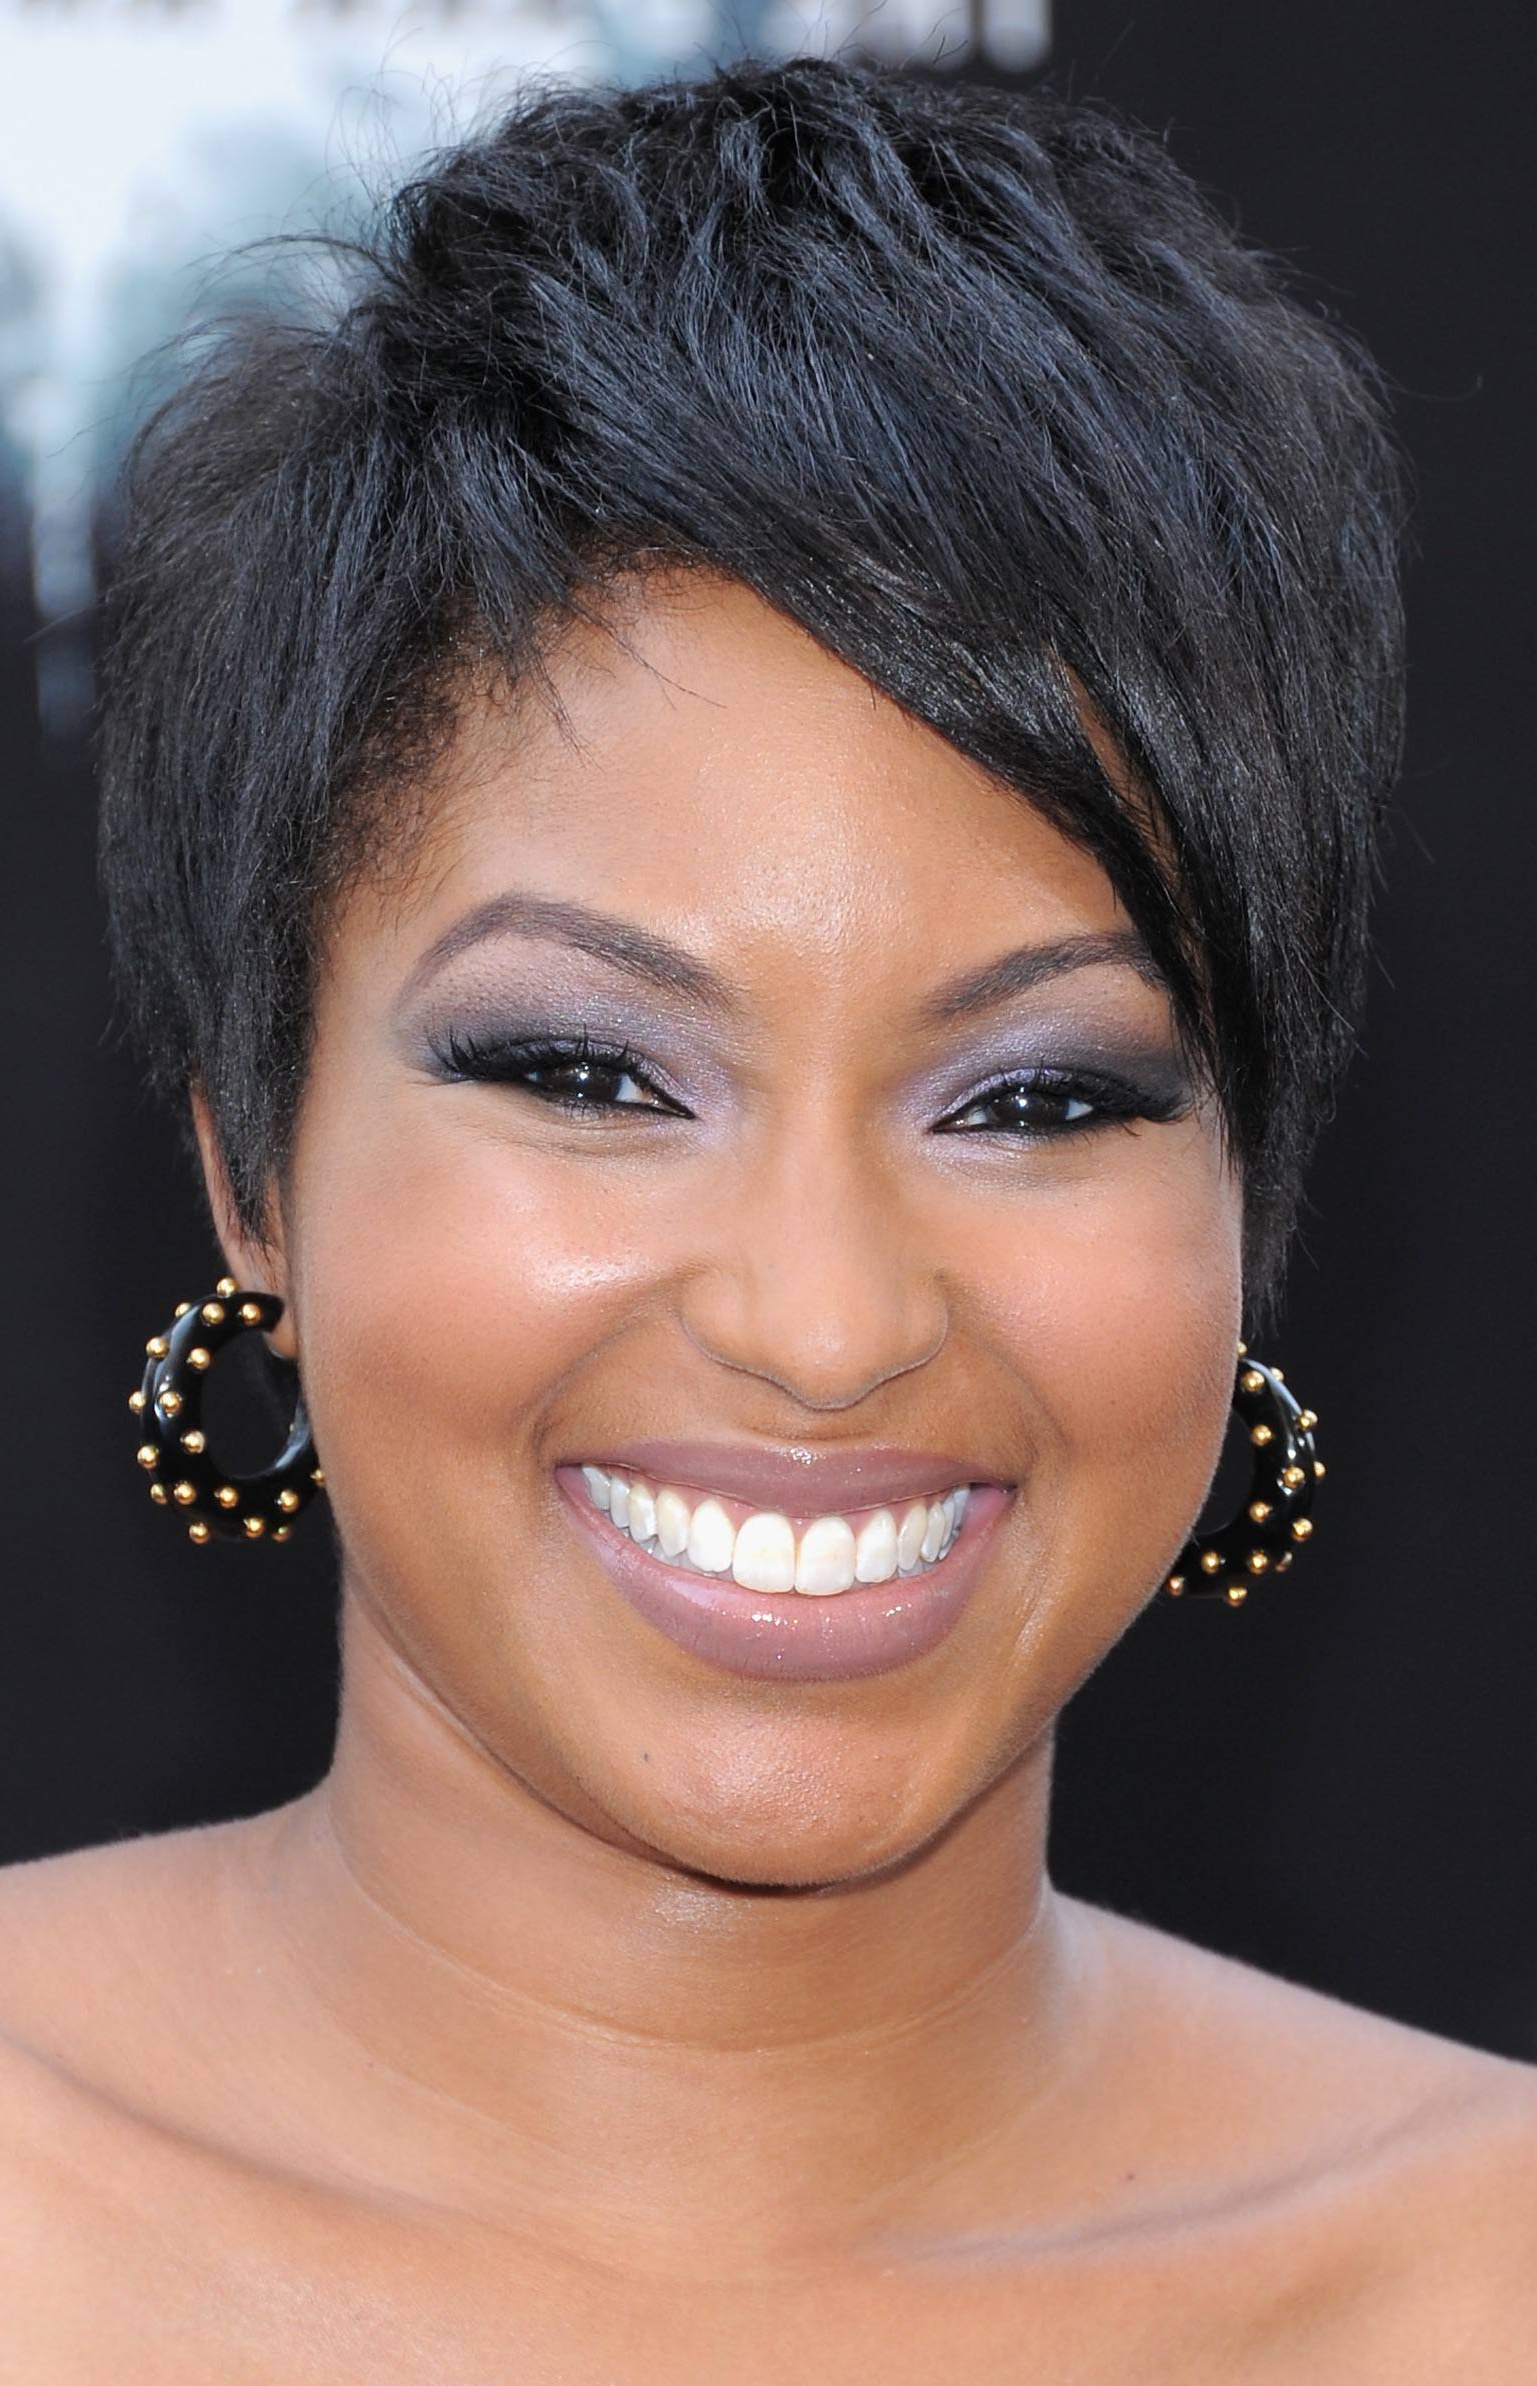 Short Hairstyles For Chubby Faces | The Best Hairstyles Throughout Short Haircuts For Black Women With Oval Faces (View 25 of 25)